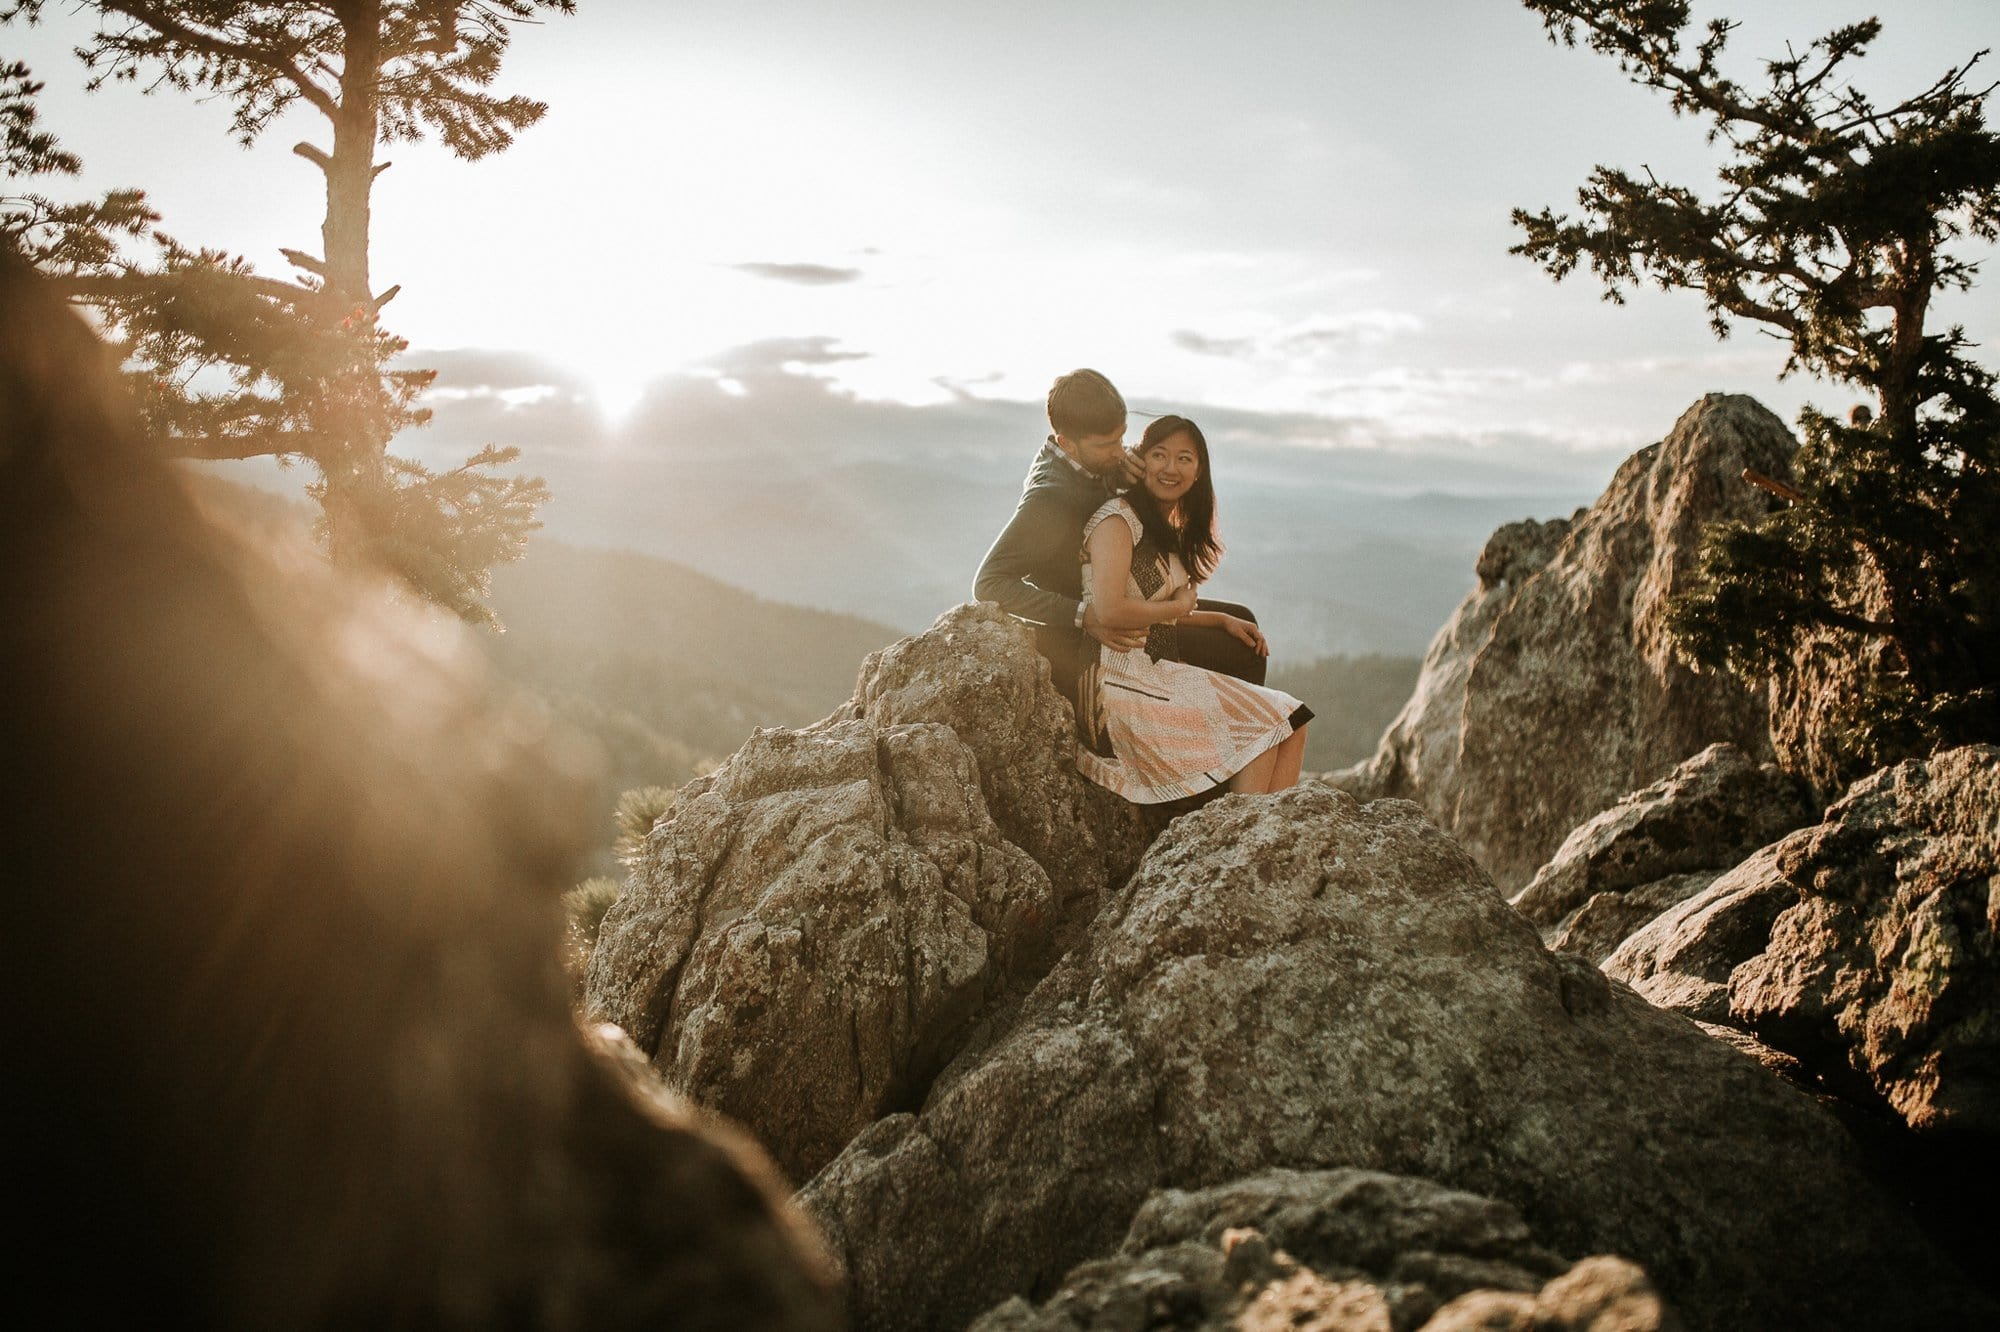 Lost Gulch Outlook, Engagement Photos, Colorado